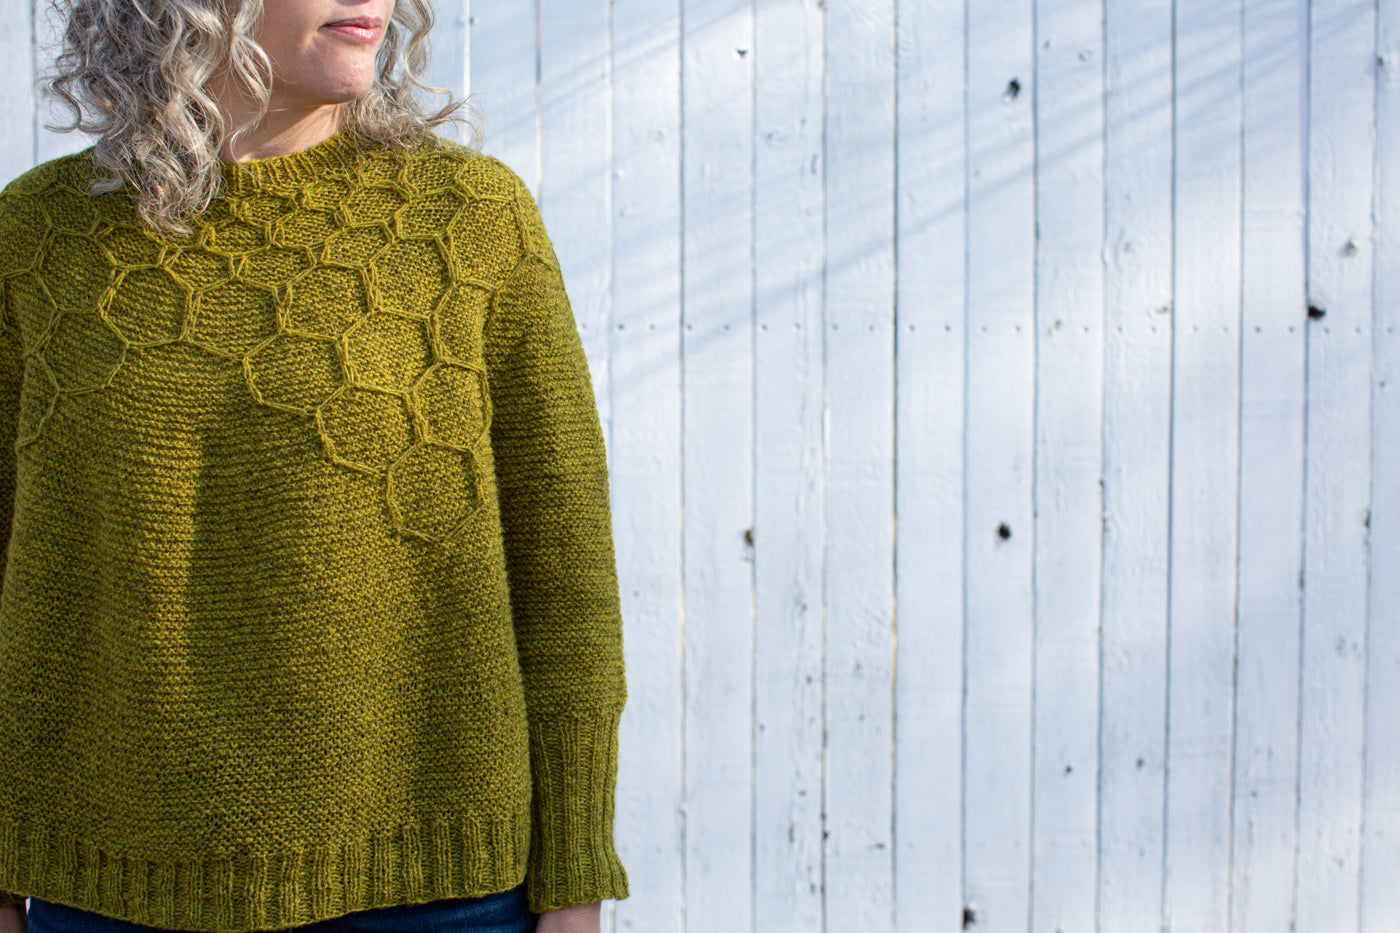 Jaime looking off to her left, camera angle is close up showing a yellow-green knitted sweater.  The sweater has a honeycomb design on top part of the sweater.  The background is a white fence.